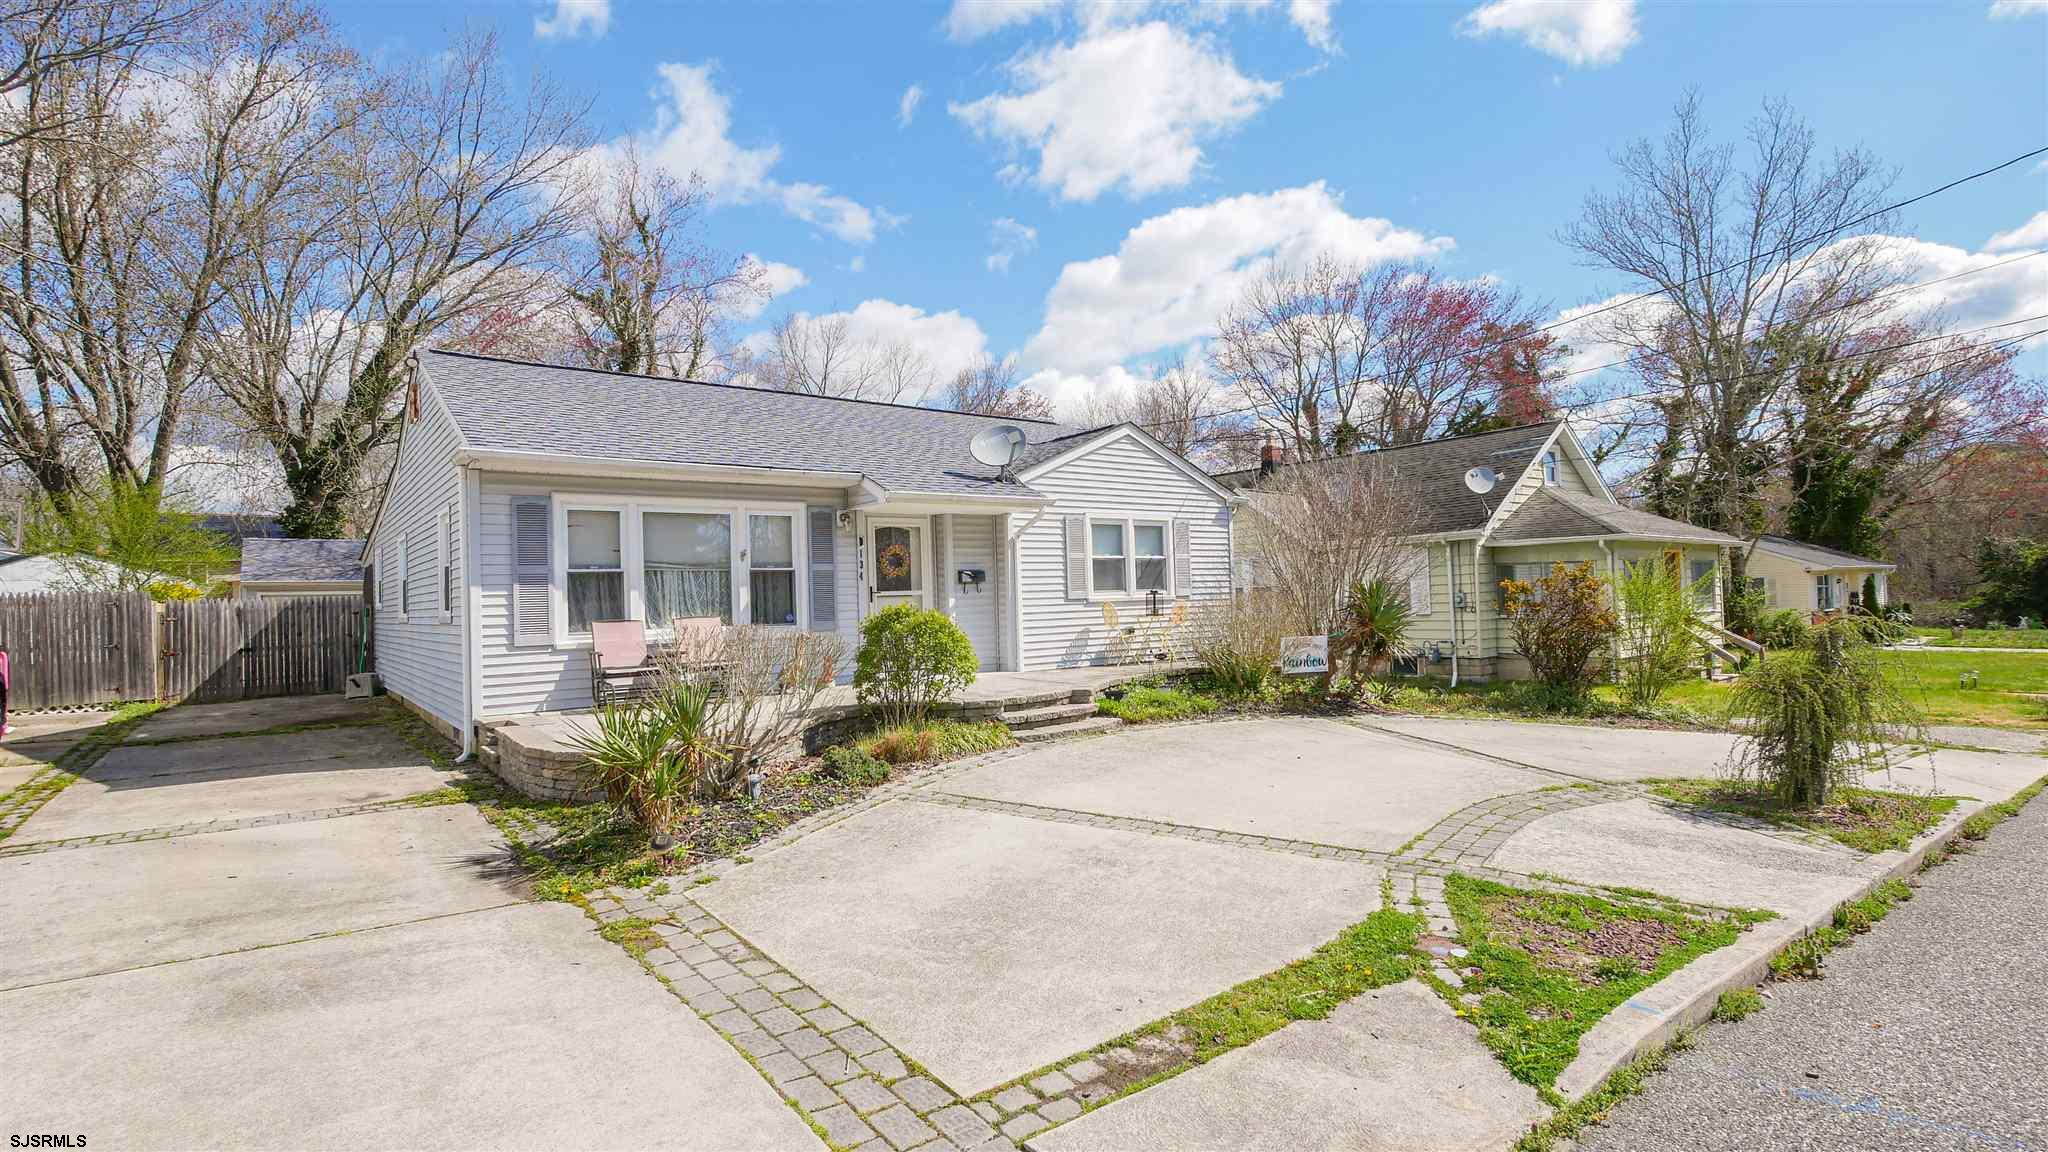 Beautiful ranch home located on a family friendly street. Featuring a U shaped driveway that offers